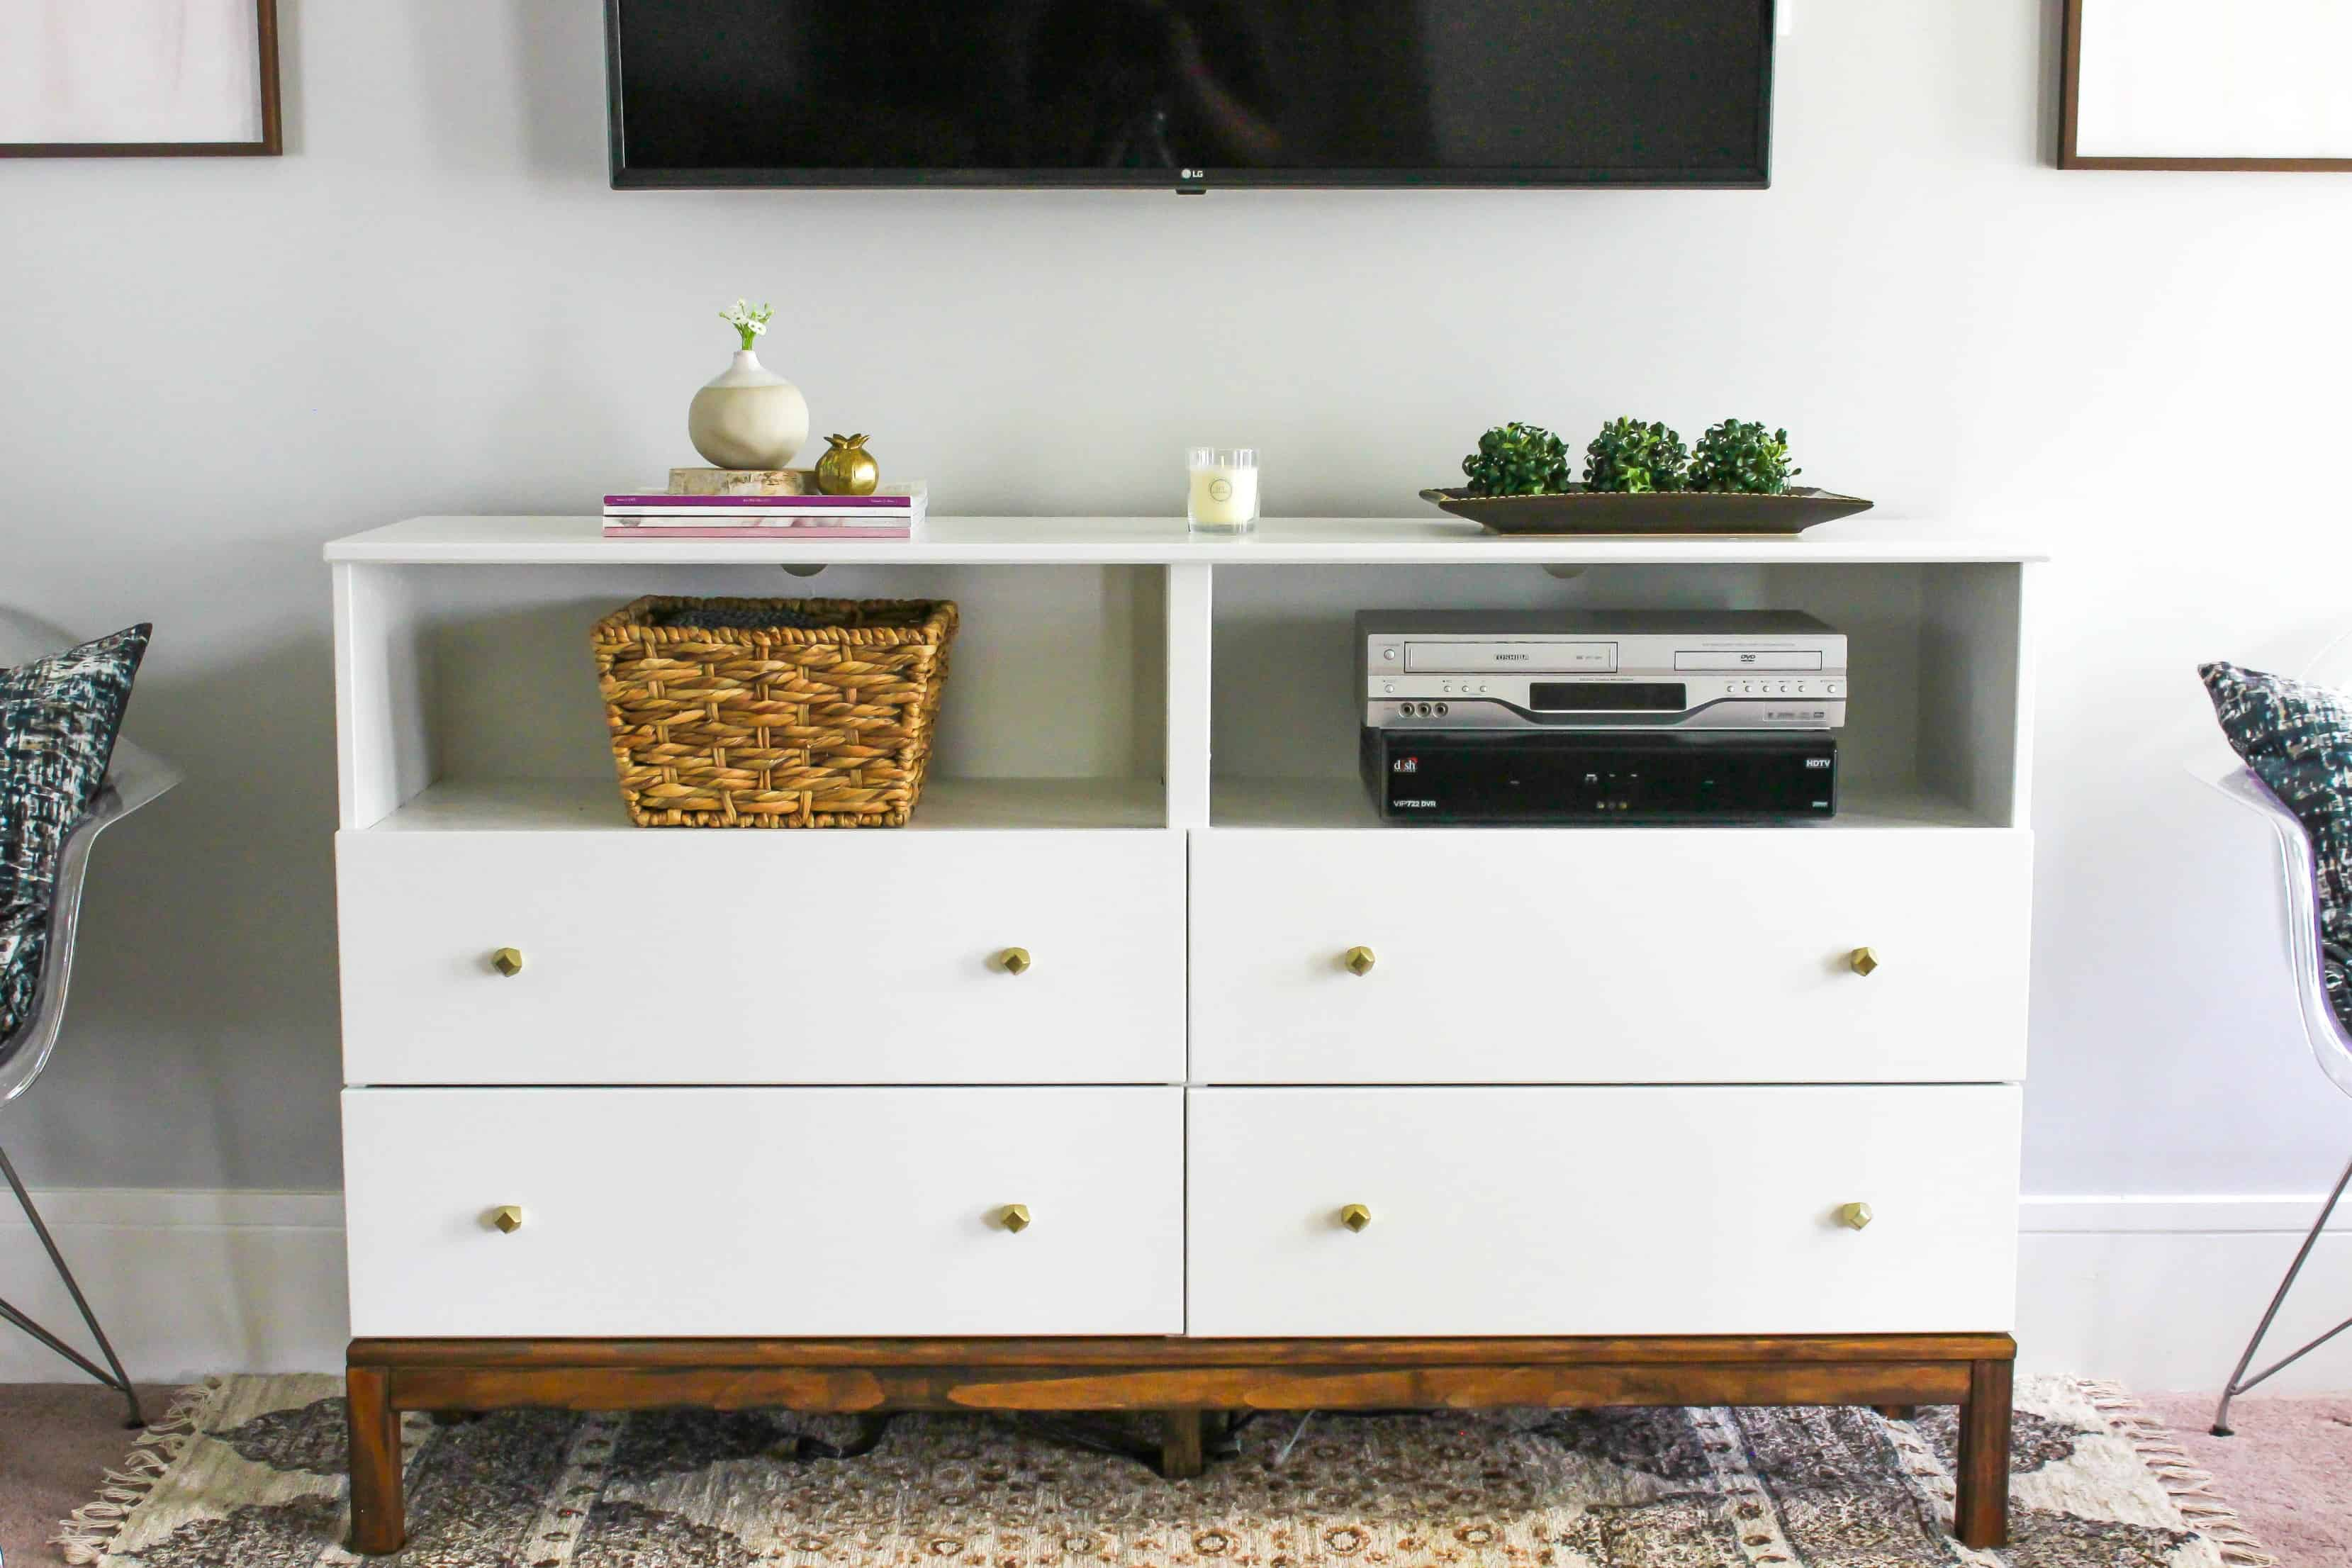 ikea dresser to tv stand transformation. Black Bedroom Furniture Sets. Home Design Ideas